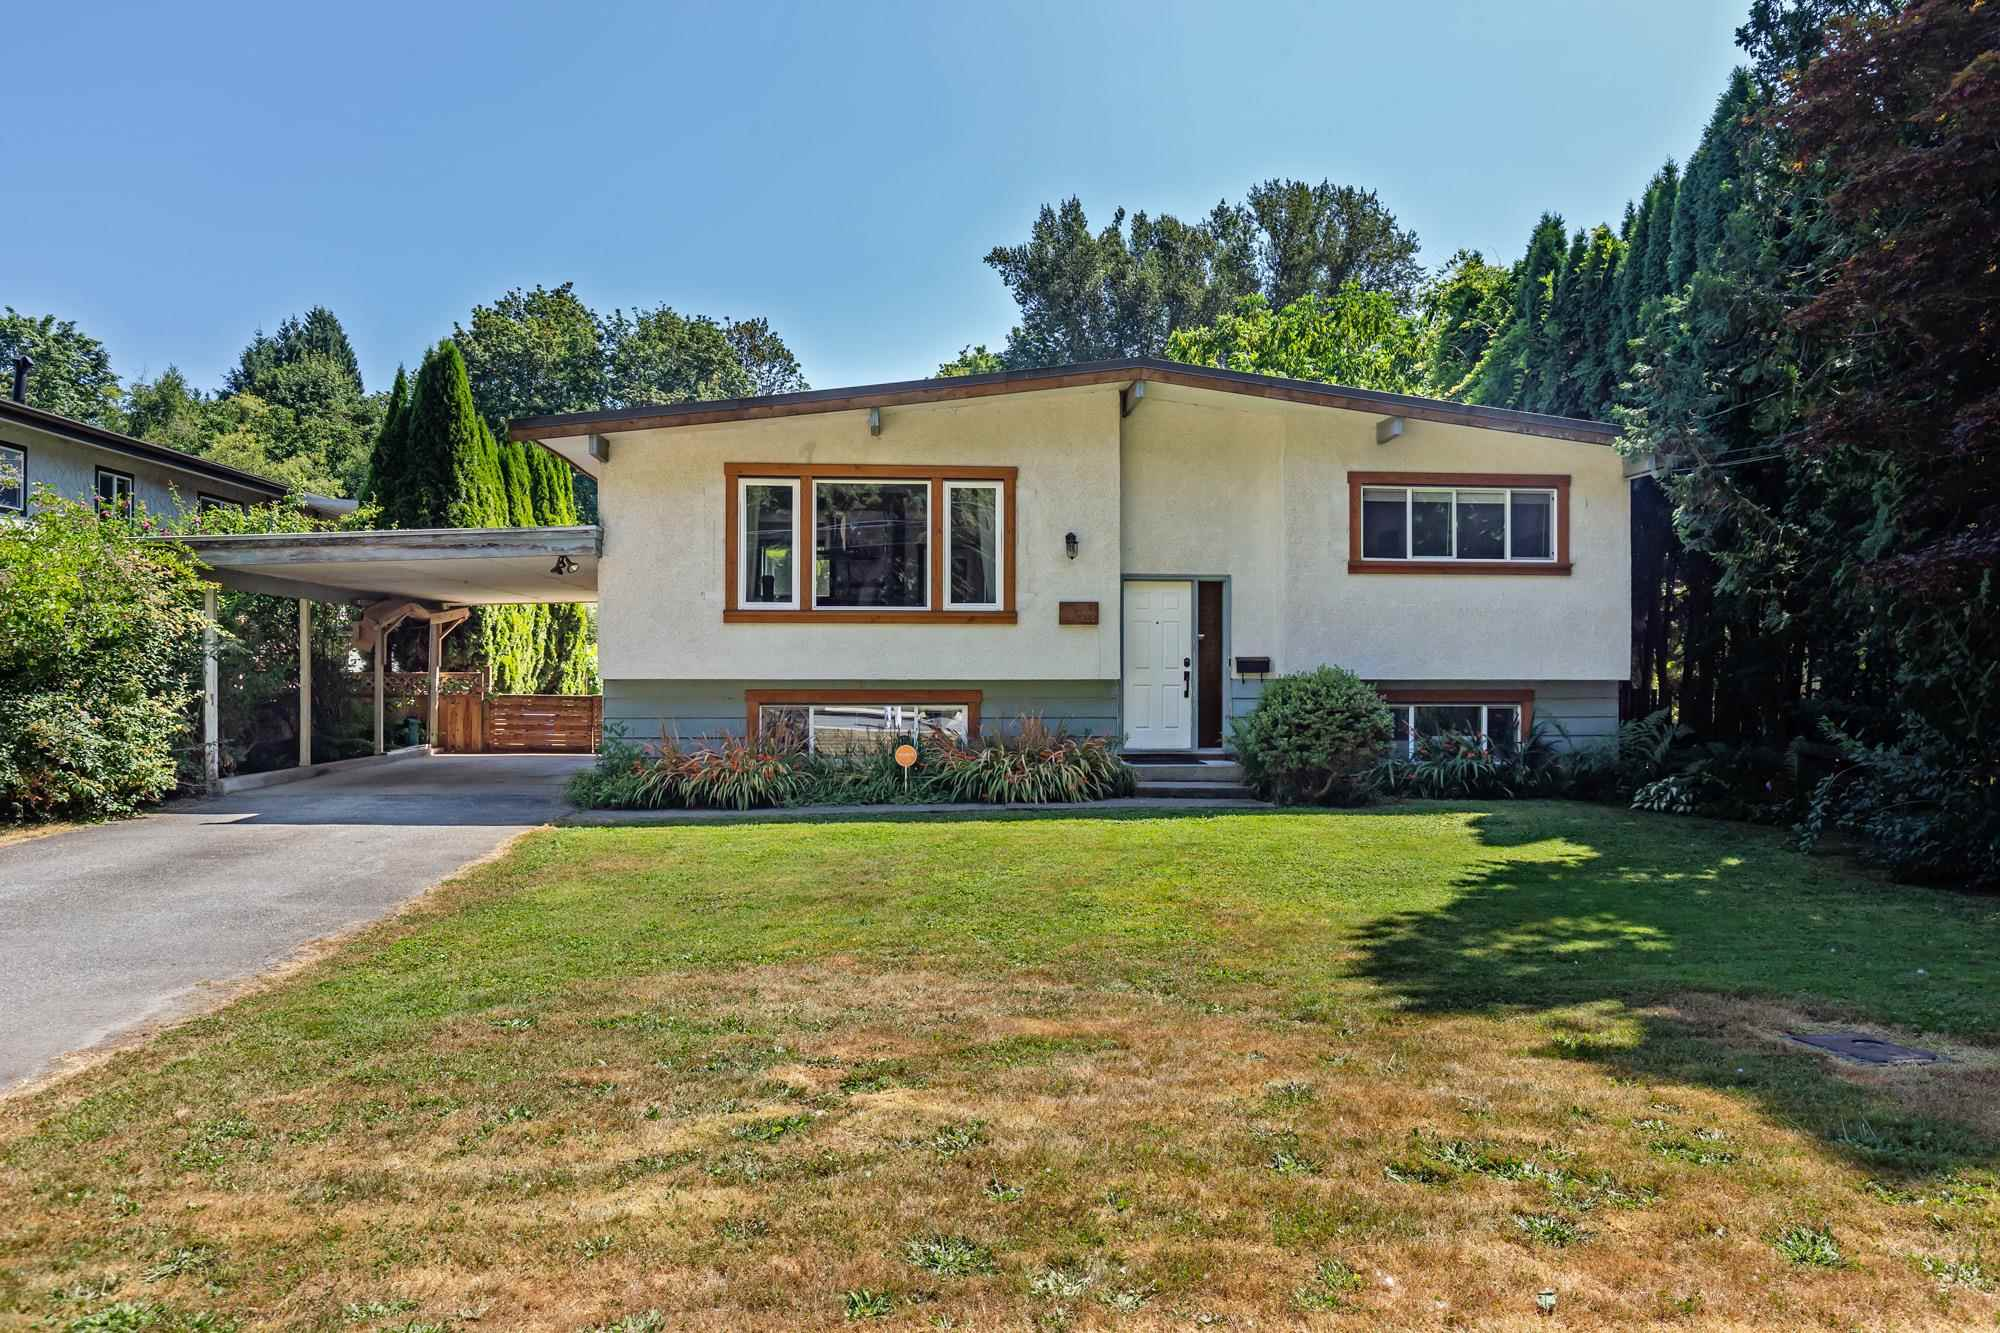 7988 STEWART STREET - Mission BC House/Single Family for sale, 3 Bedrooms (R2605375) - #1